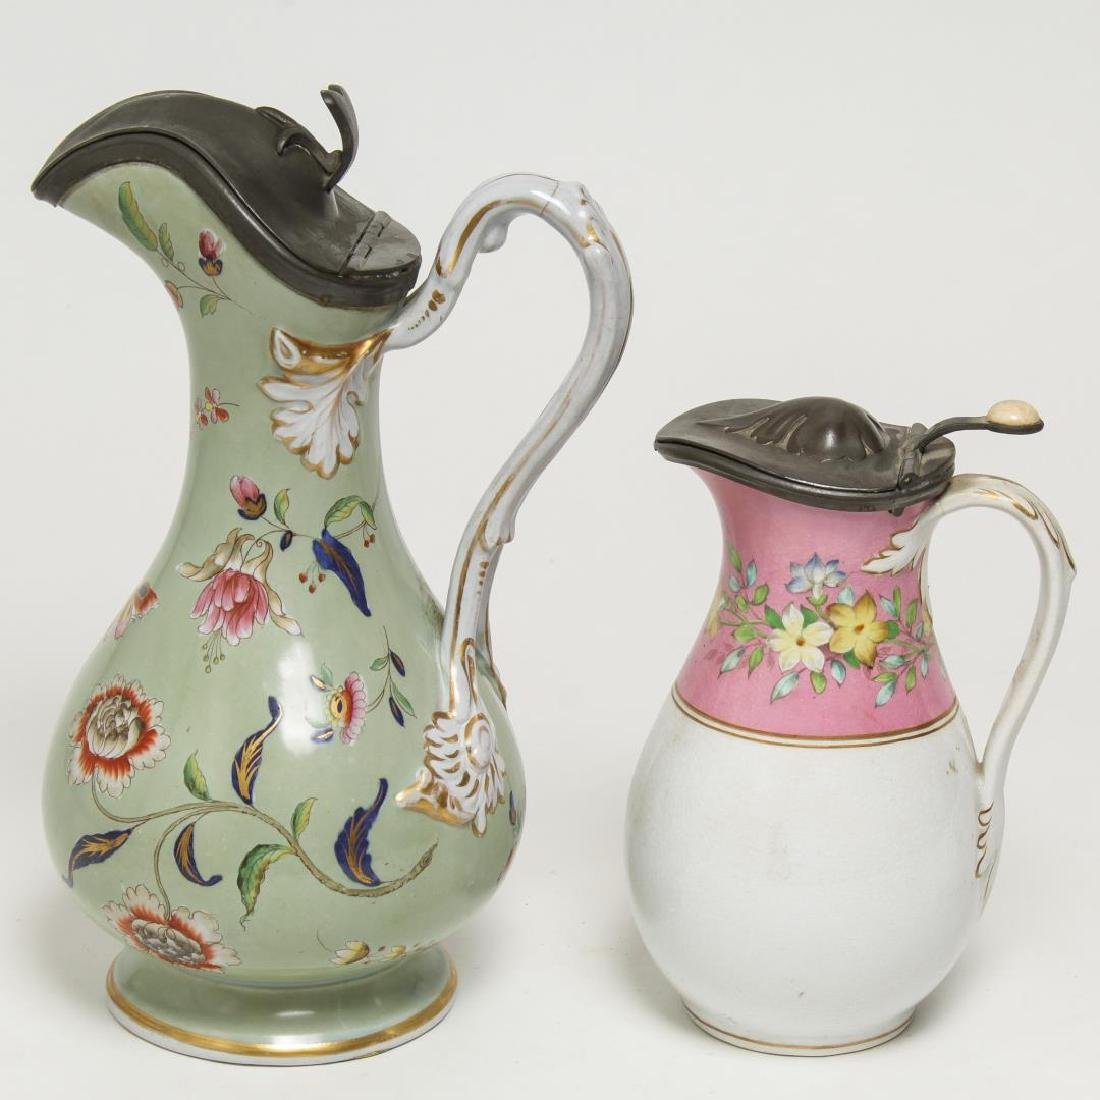 English Painted Porcelain & Pewter Table Jugs, 2 - 3